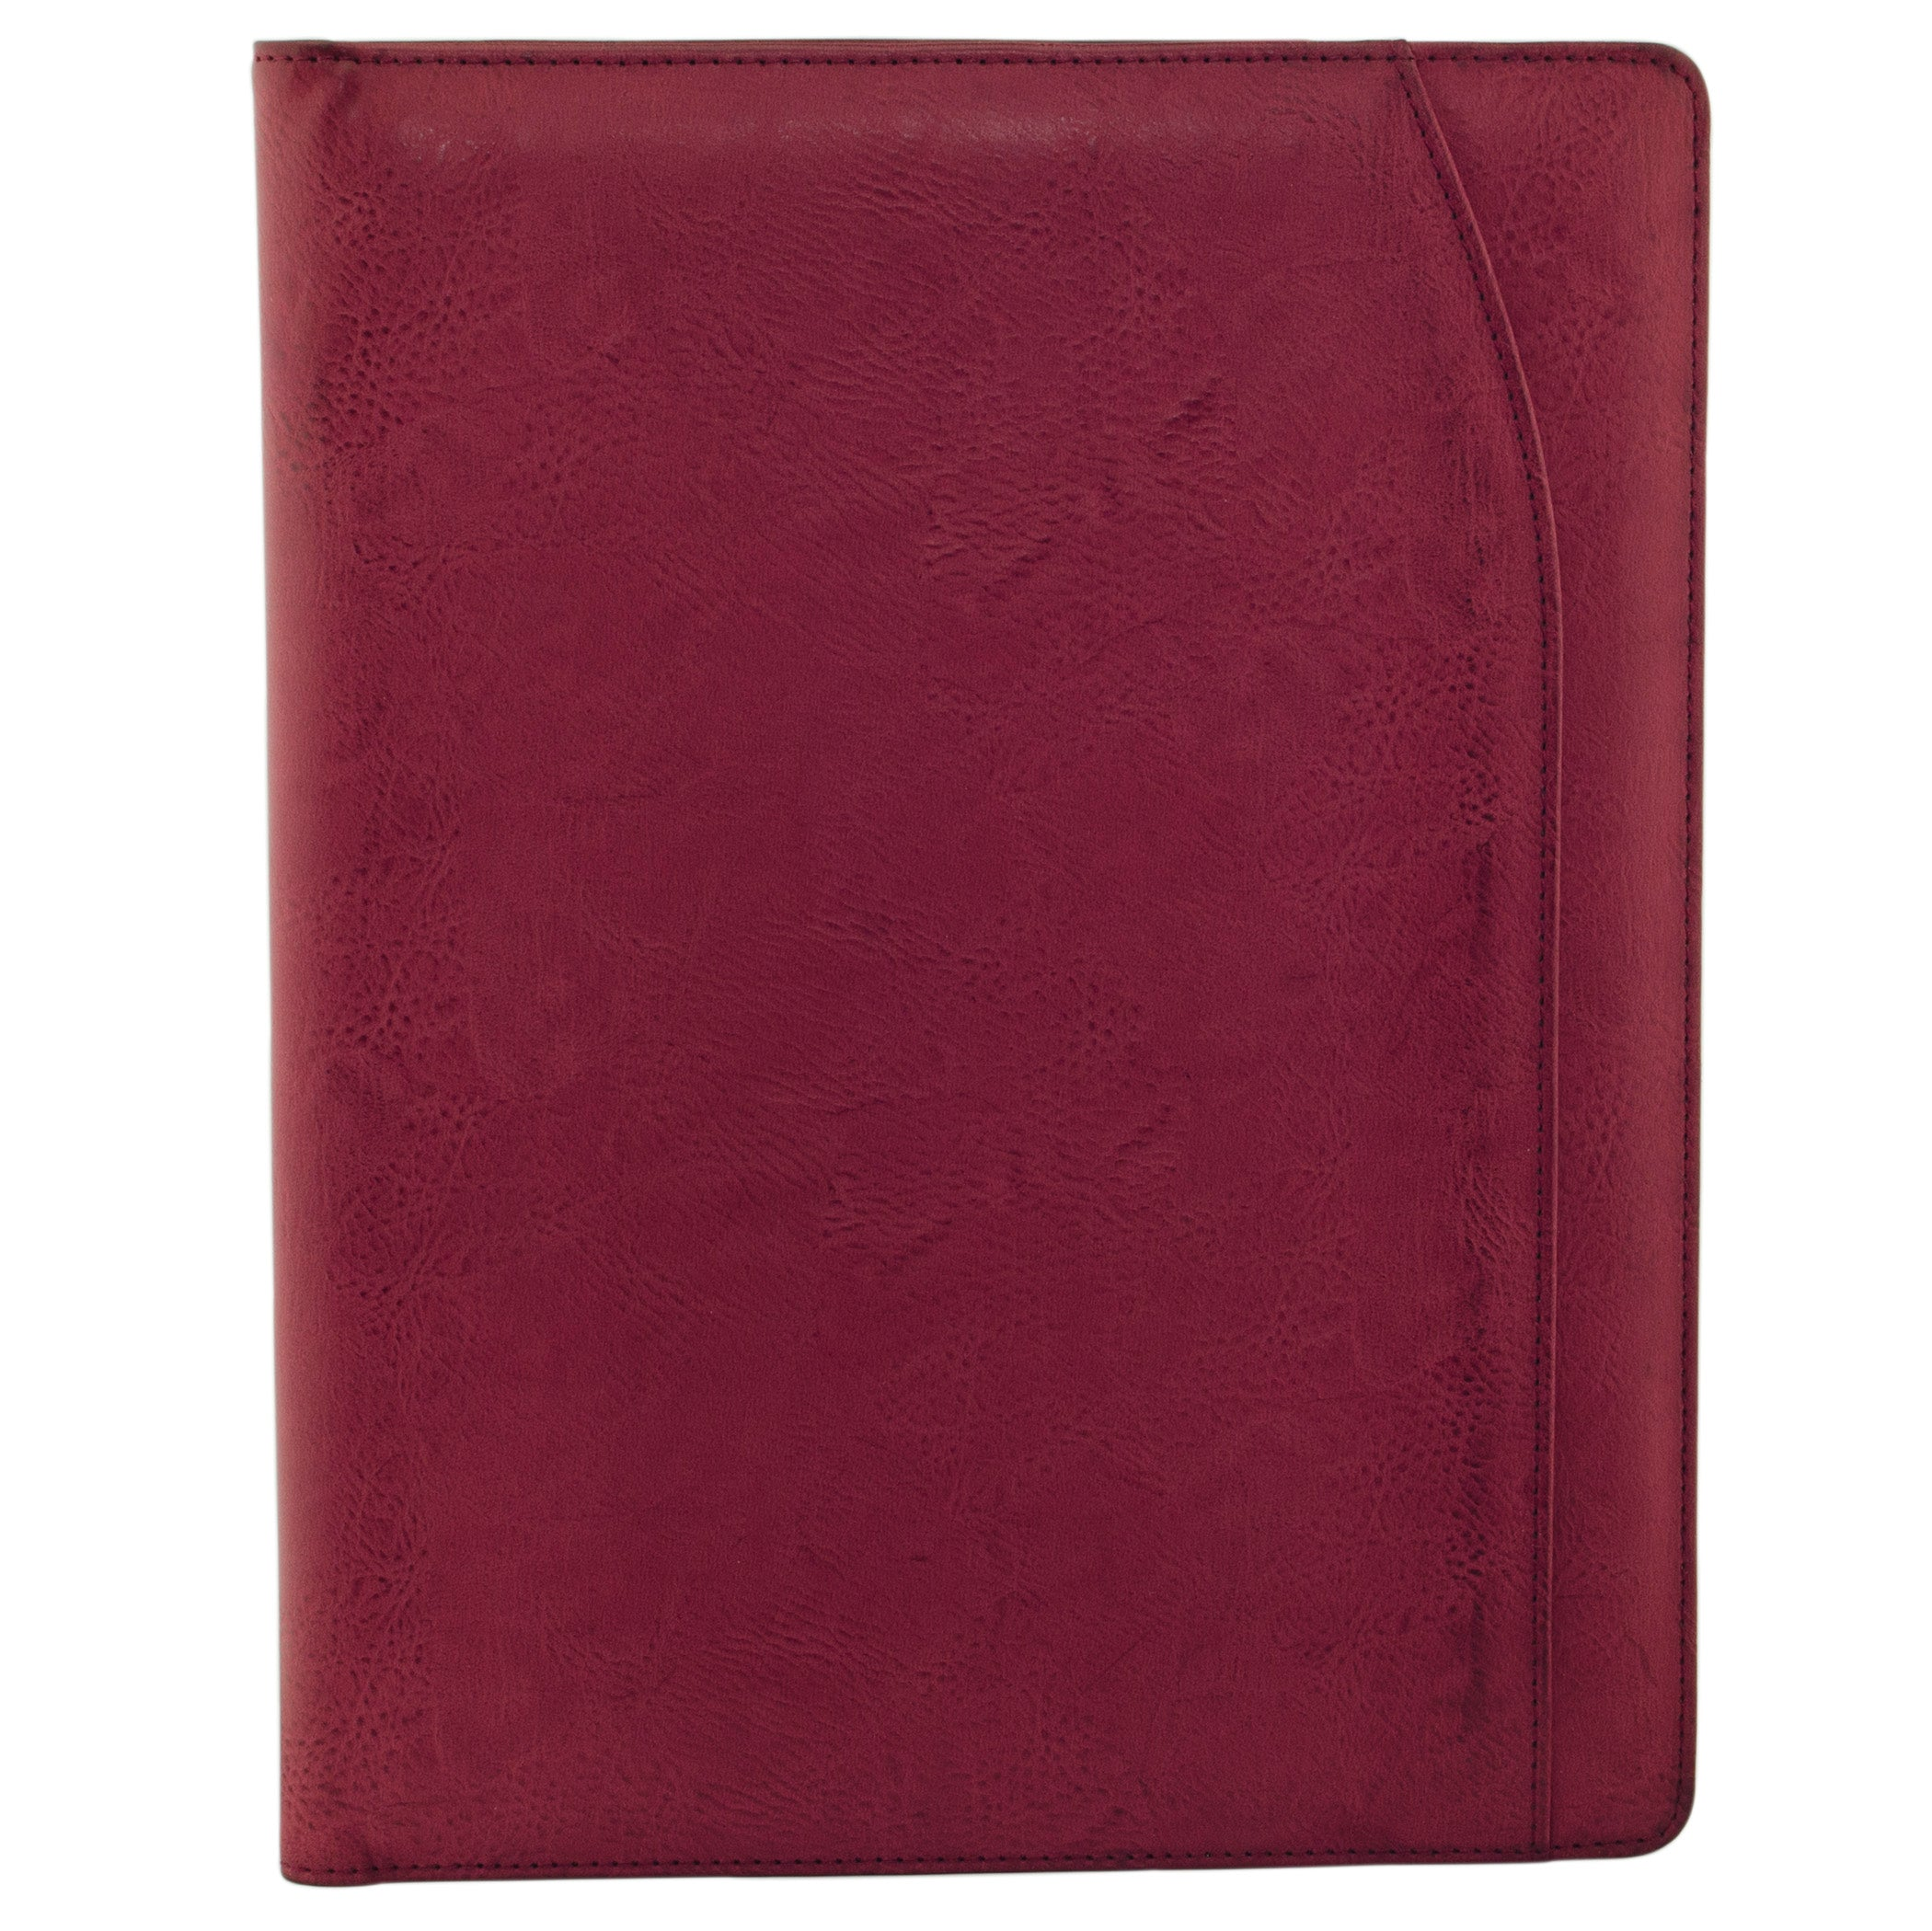 "Pebble Grain Faux Leather Body. Synthetic Lining. 7 Interior Pockets. 1 ID Window. Full Length Slip Pocket. Slip Pocket for Writing Pad (writing pad included). Style: ST625005. Dimensions: 9.25 x 0.5"" x 12.13"". Weight: 1.3lbs."""